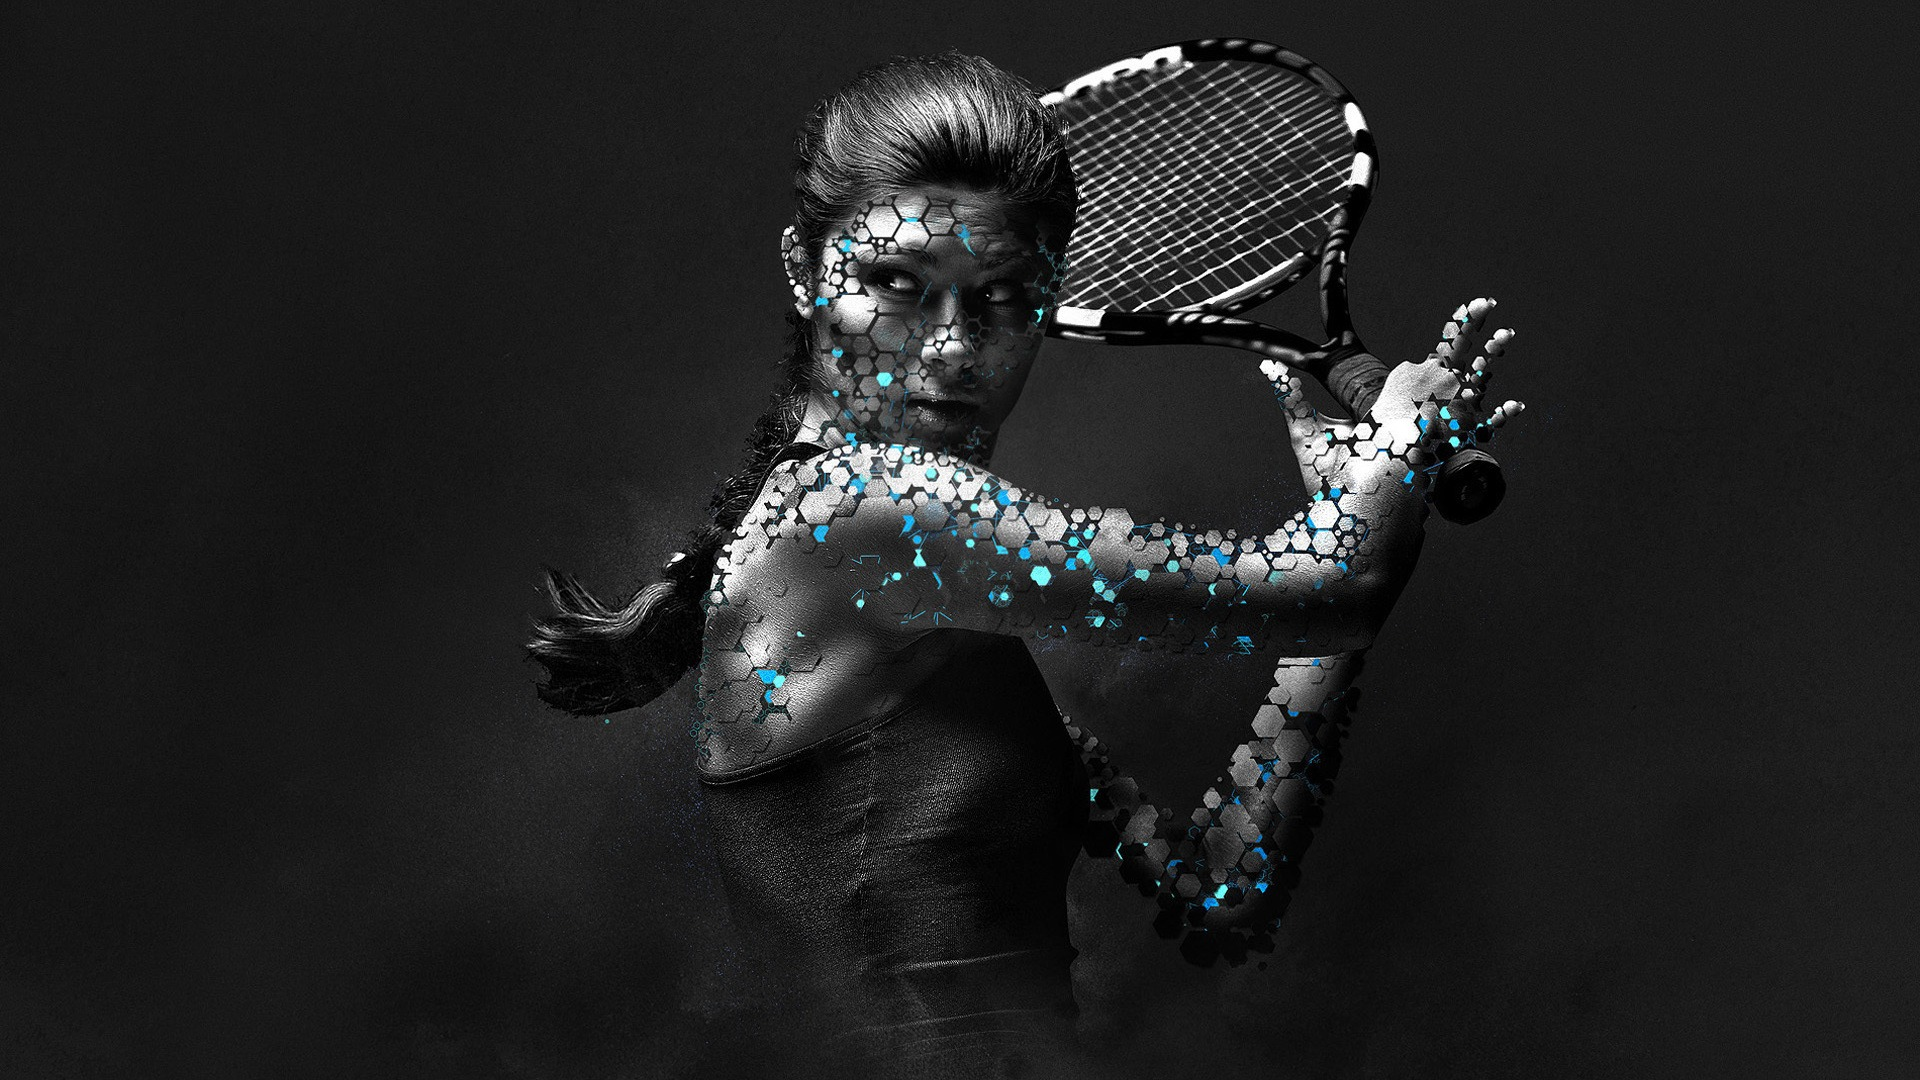 Woman Tennis Player 1080p Hd Wallpaper Sports Photoshop Design Sports Advertising Photoshop Wallpapers